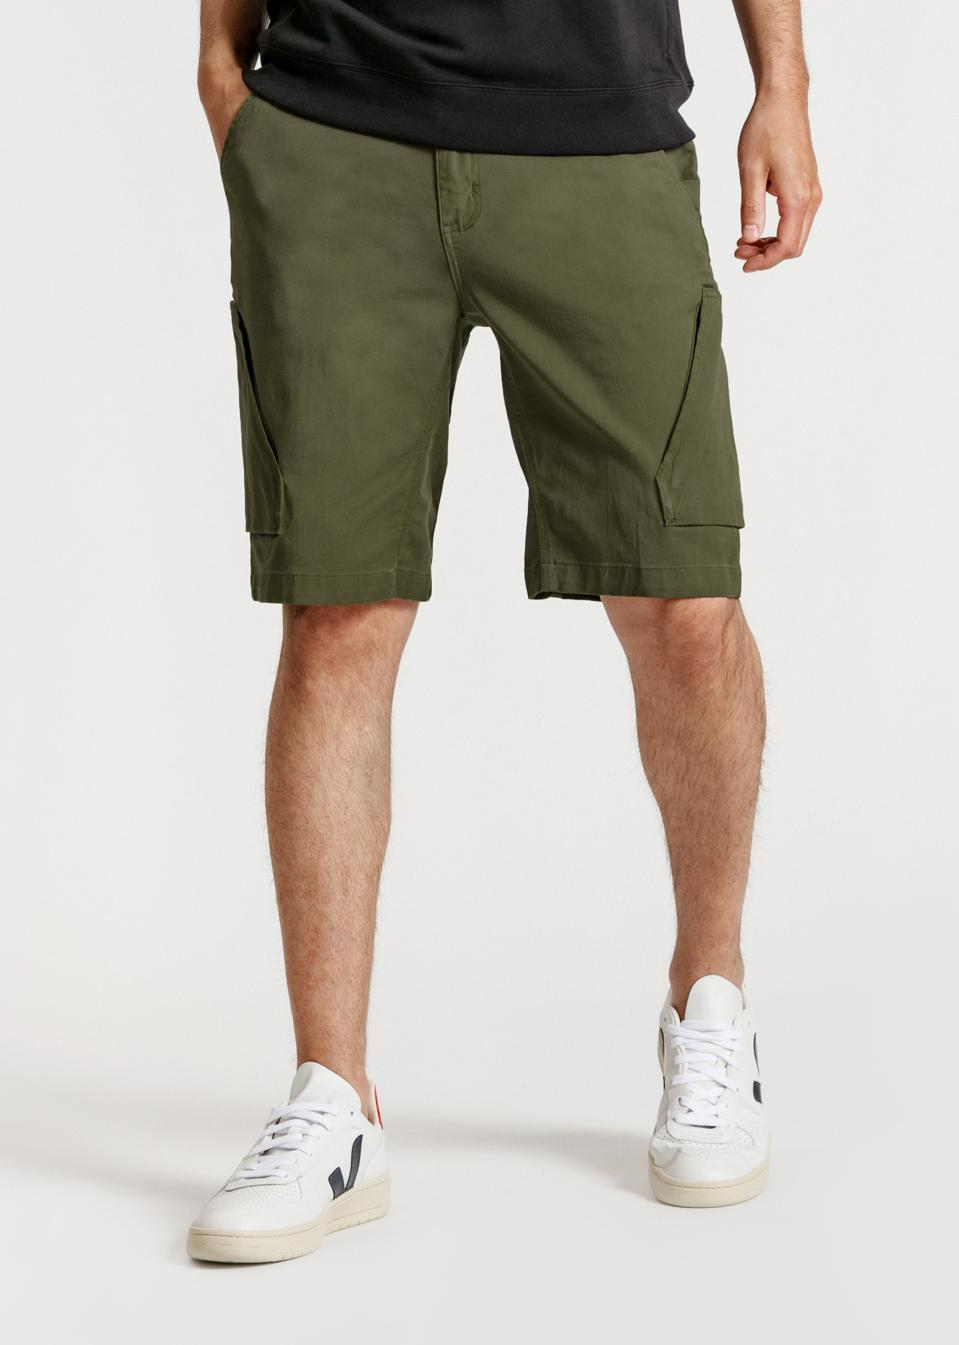 This popular pant is designed for any summer adventure.